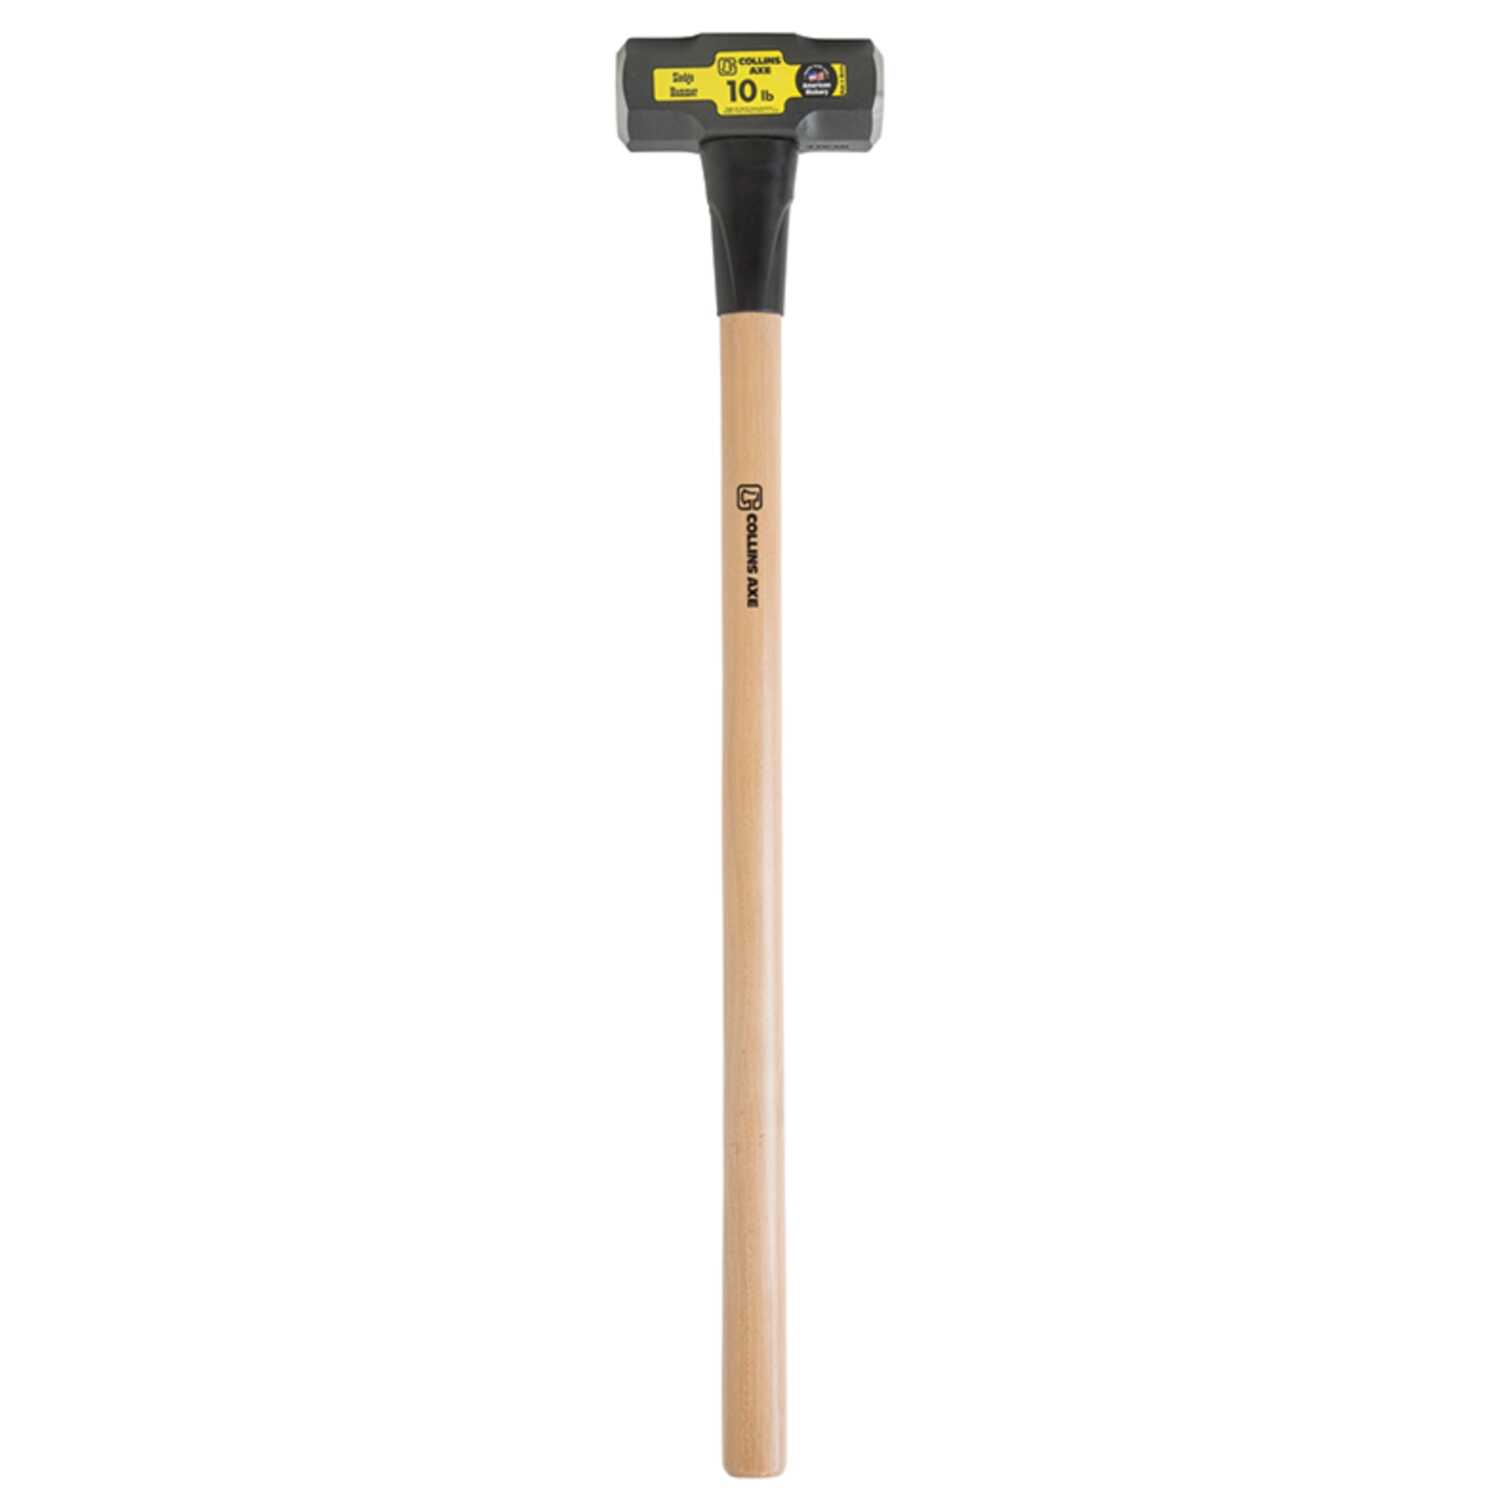 Collins  10 lb. Forged High Carbon Steel Head Sledge Hammer  36 in. L x 2.65 in. Dia.